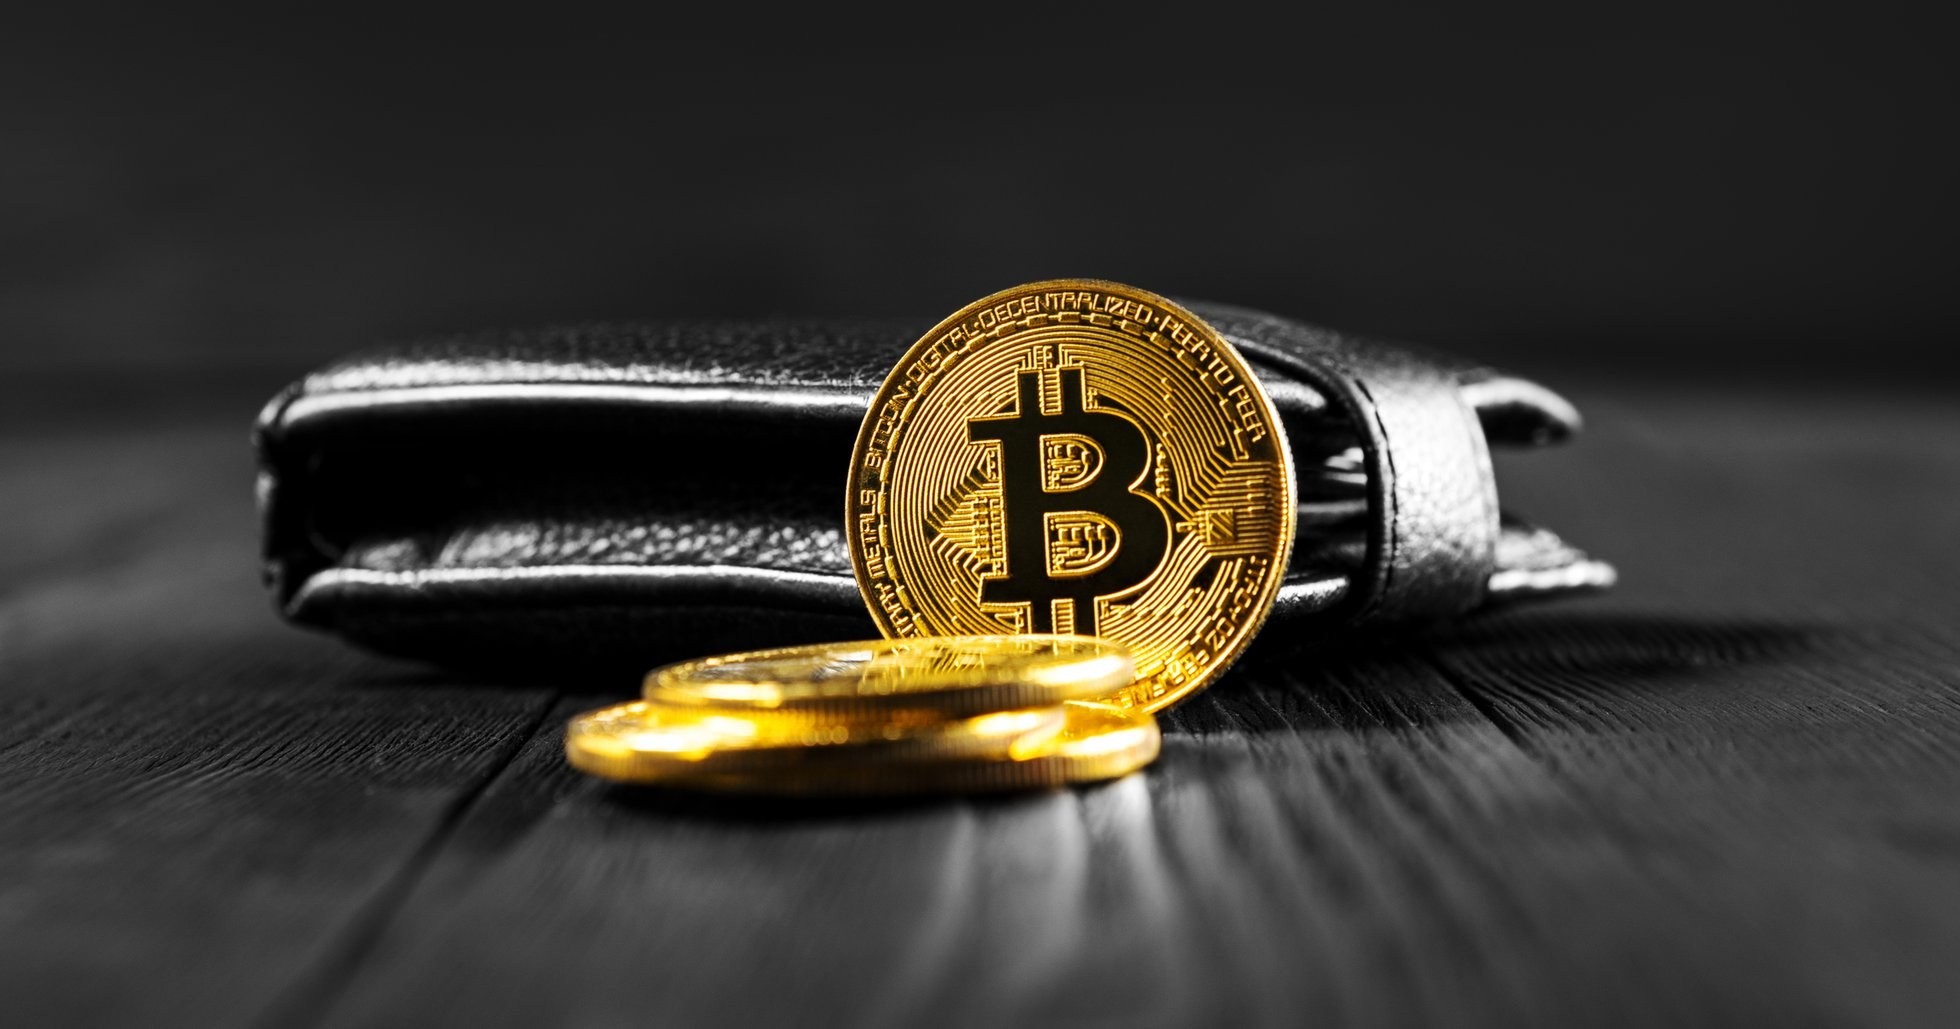 Nearly $10 billion in bitcoin is stored on only 8 crypto exchanges.